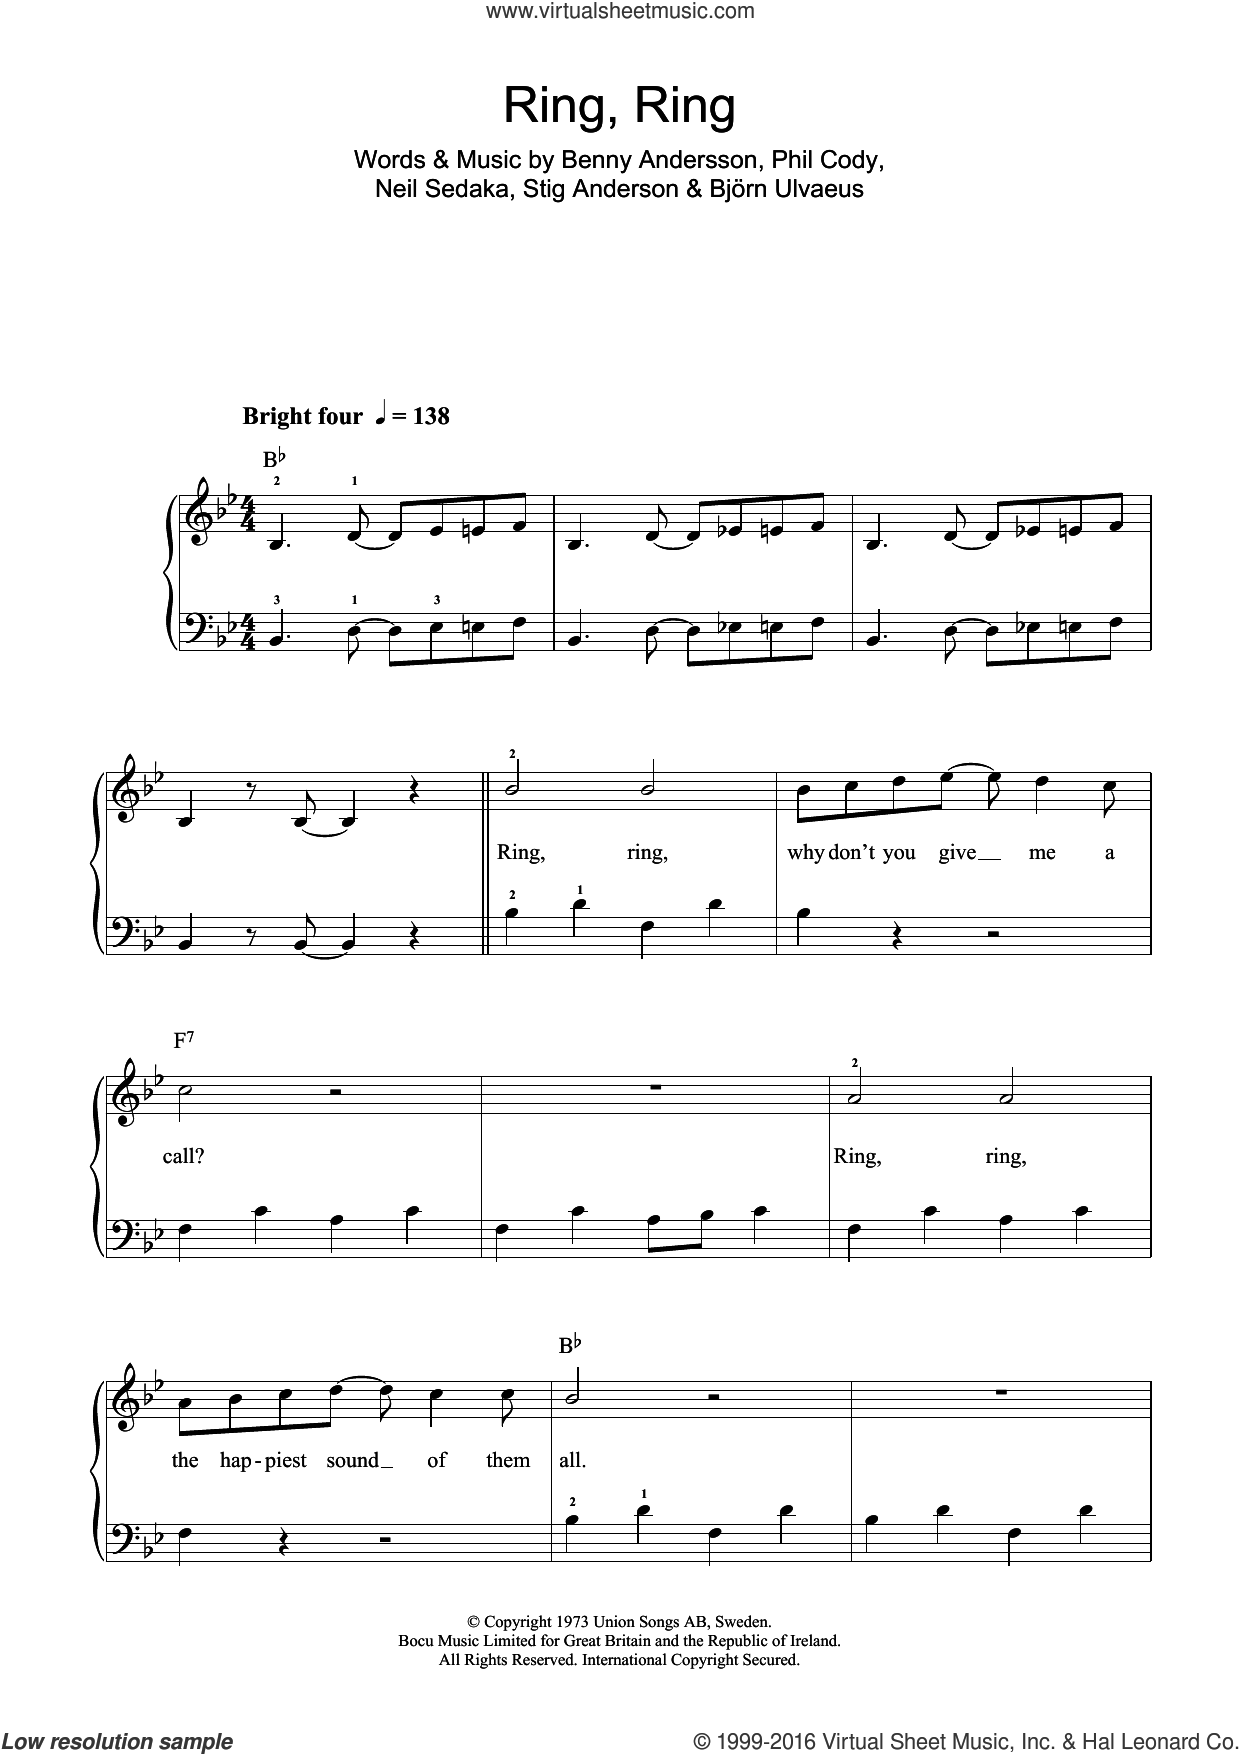 Ring, Ring sheet music for piano solo (beginners) by ABBA, Benny Andersson, Bjorn Ulvaeus, Neil Sedaka, Phil Cody and Stig Anderson, beginner piano (beginners)